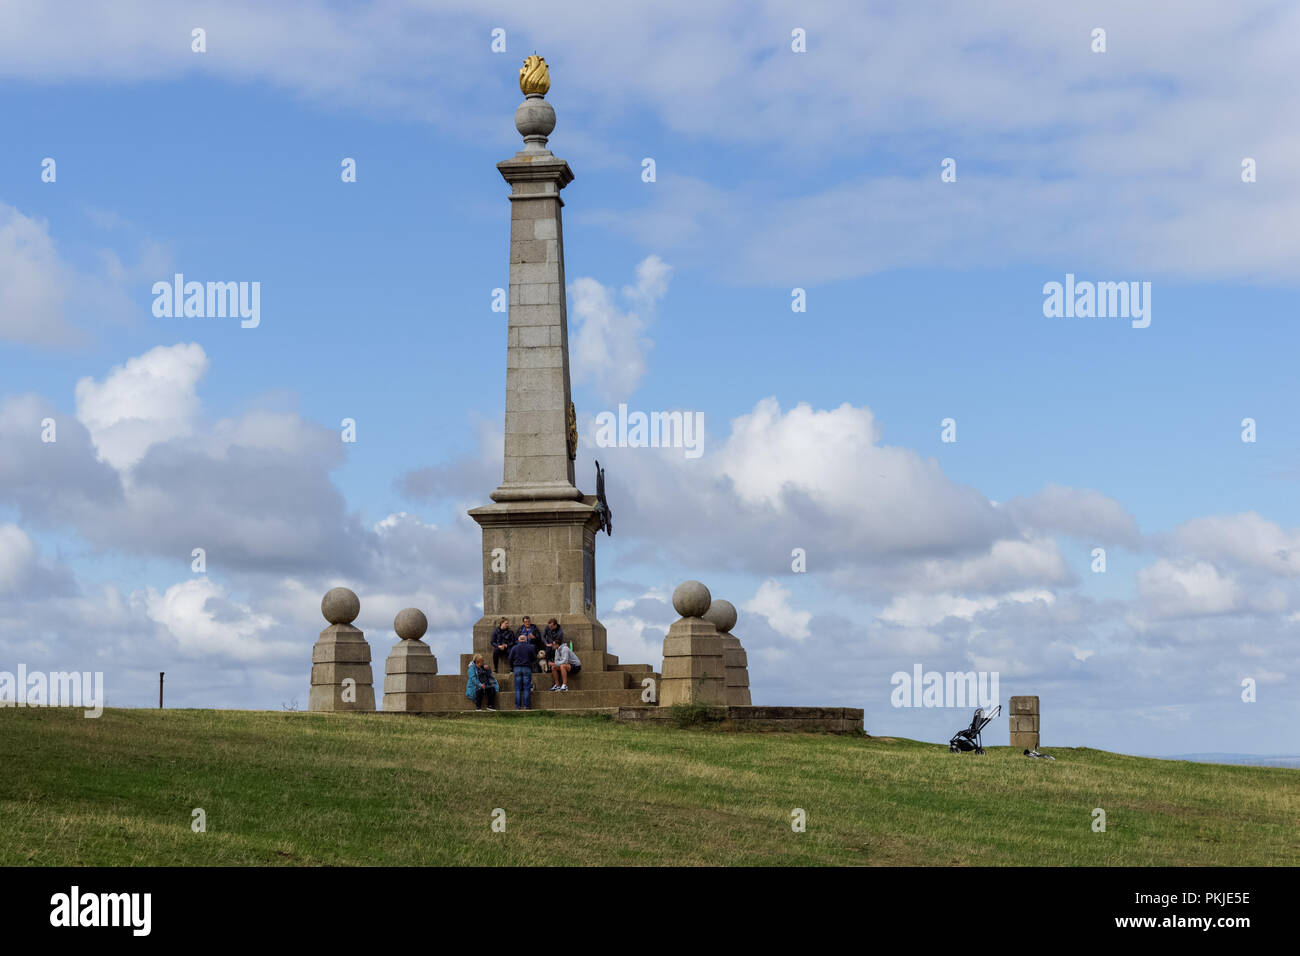 The monument on Coombe Hill in The Chilterns Buckinghamshire, England United Kingdom UK - Stock Image